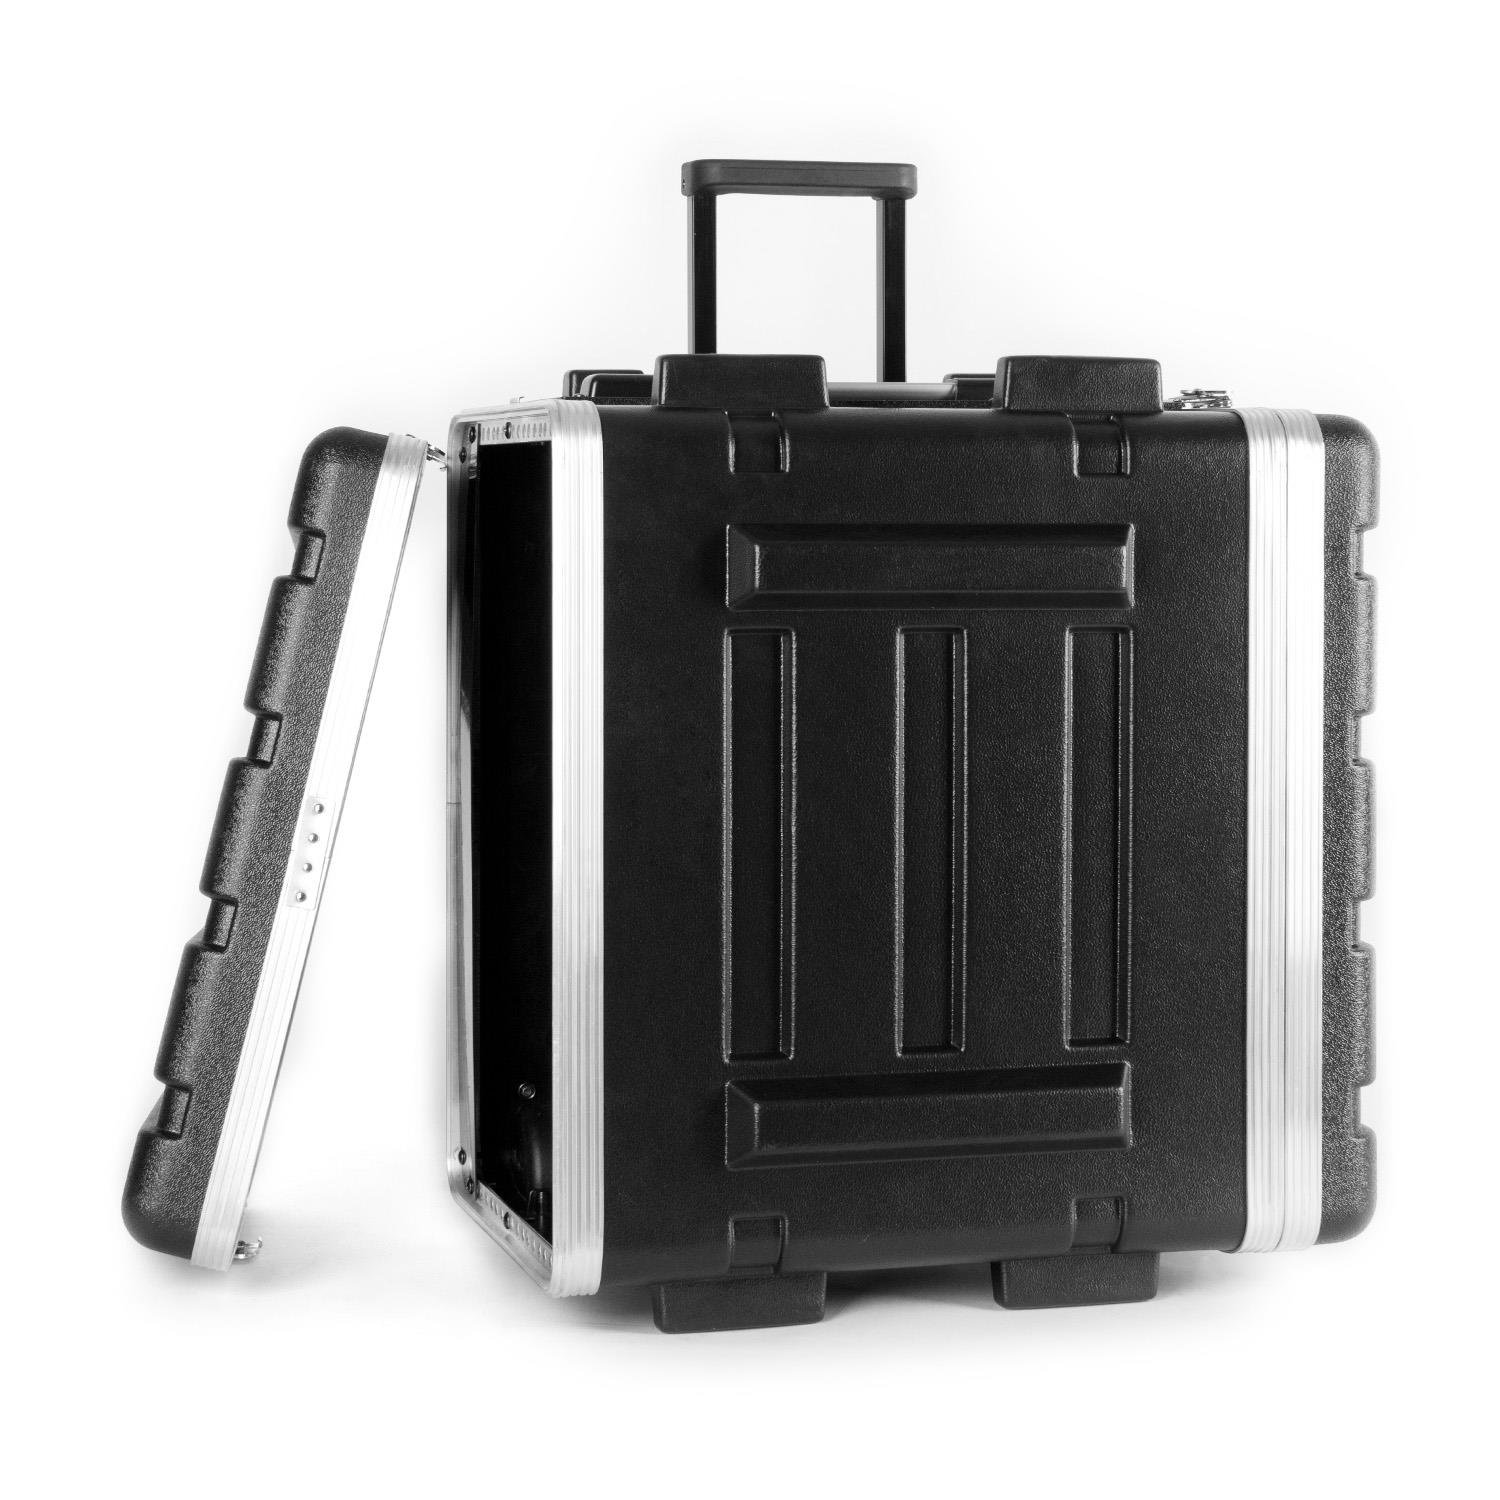 Frontstage ABS valigia trolley Flight case 19 6U